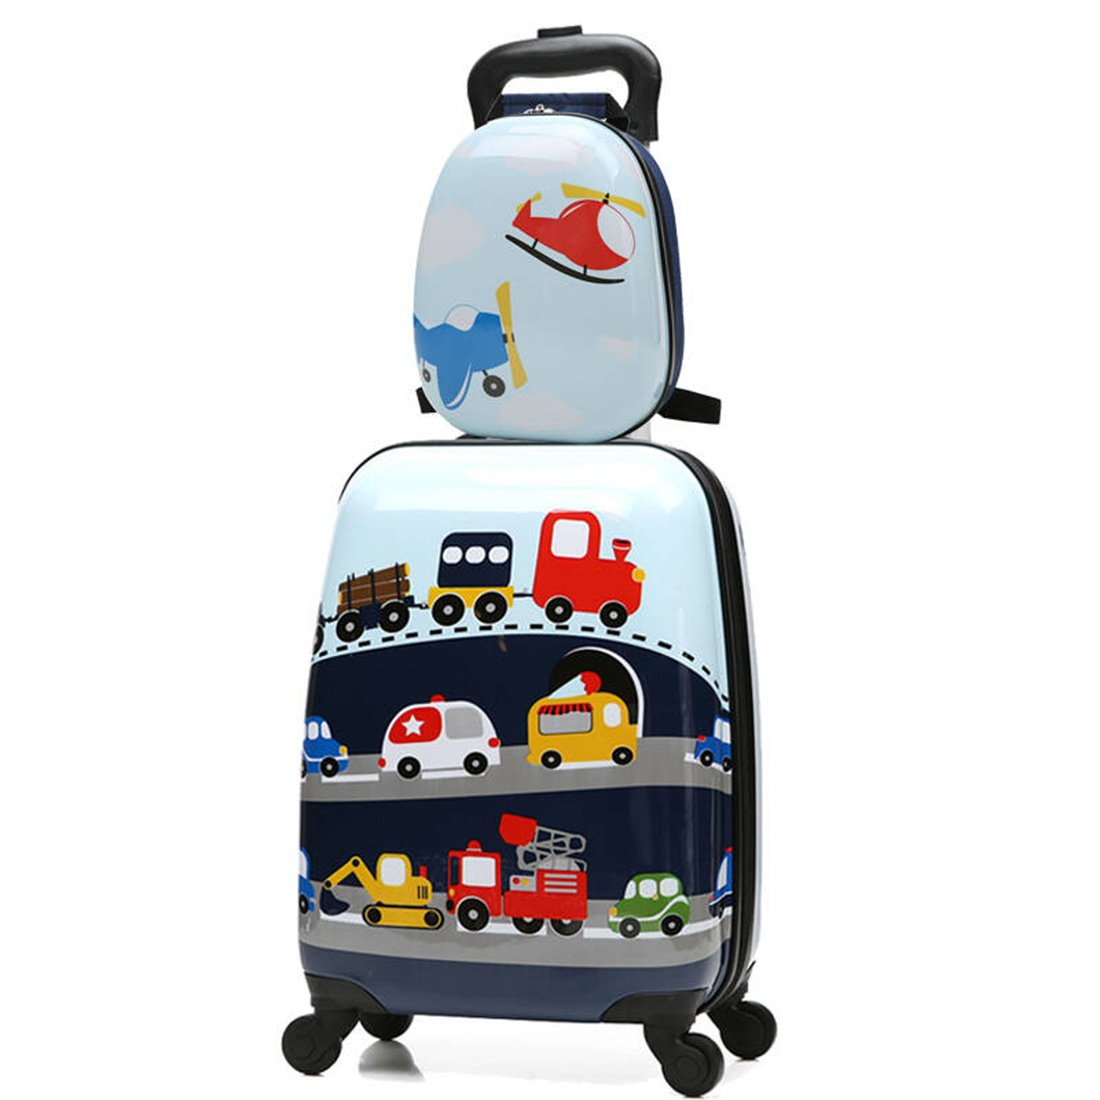 MOREFUN Travel Suitcase Kids 2 Pc Wheels Luggage Set 18'' Carry on Luggage and 13'' Backpack Car by Morefun Trading (Image #1)